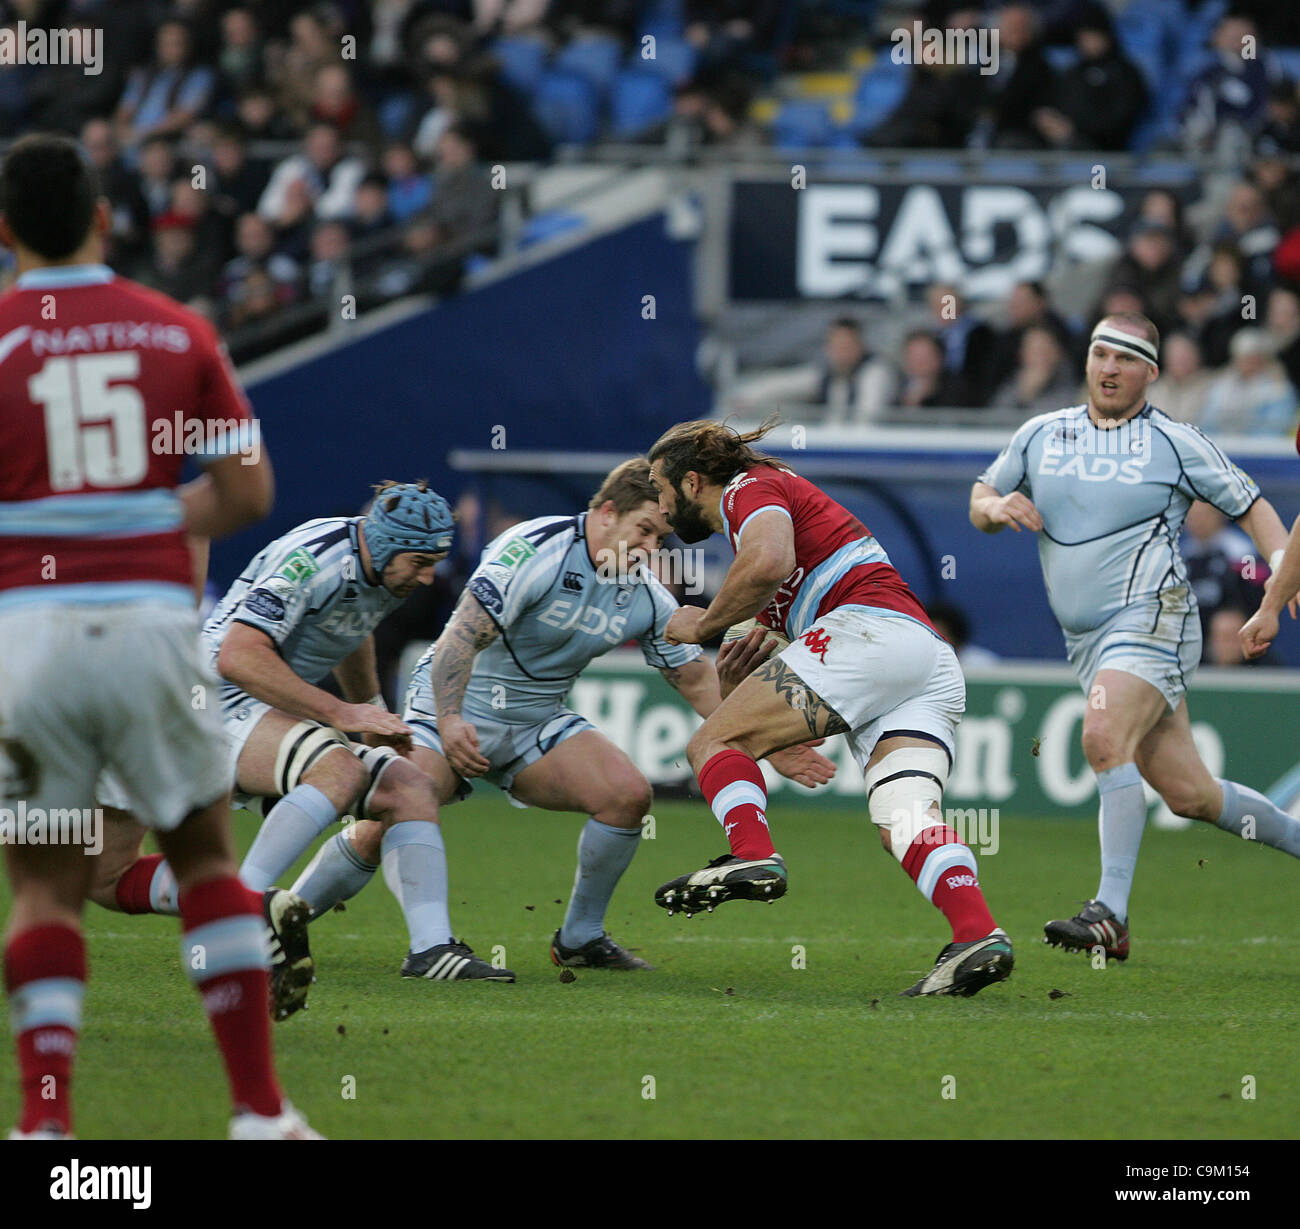 RUGBY - HEINEKEN CUP. CARDIFF BLUES VS. RACING METRO 92. Cardiff 22 JANUARY 2012.    Metro's Sebastien Chabal - Stock Image